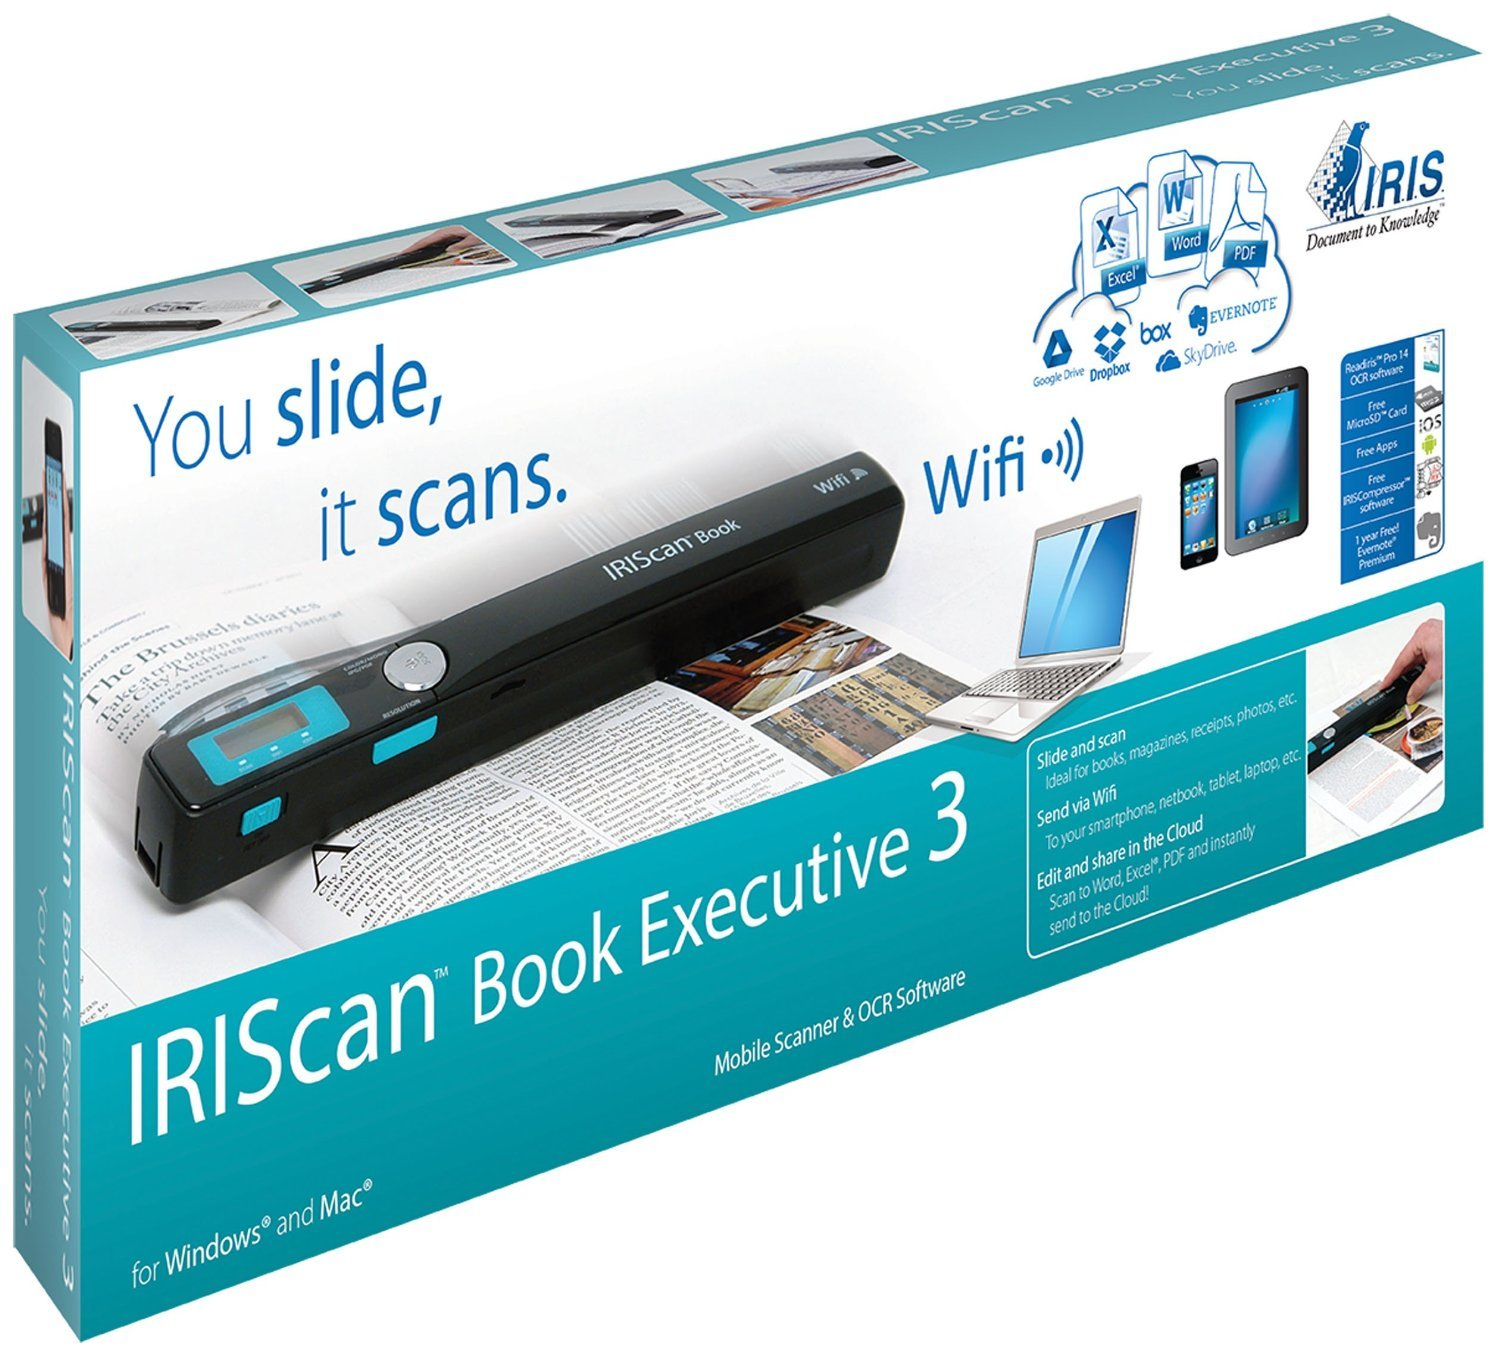 IRIS Scan Book 3 Executive Wireless Portable 900 dpi Color Scanner with WiFi